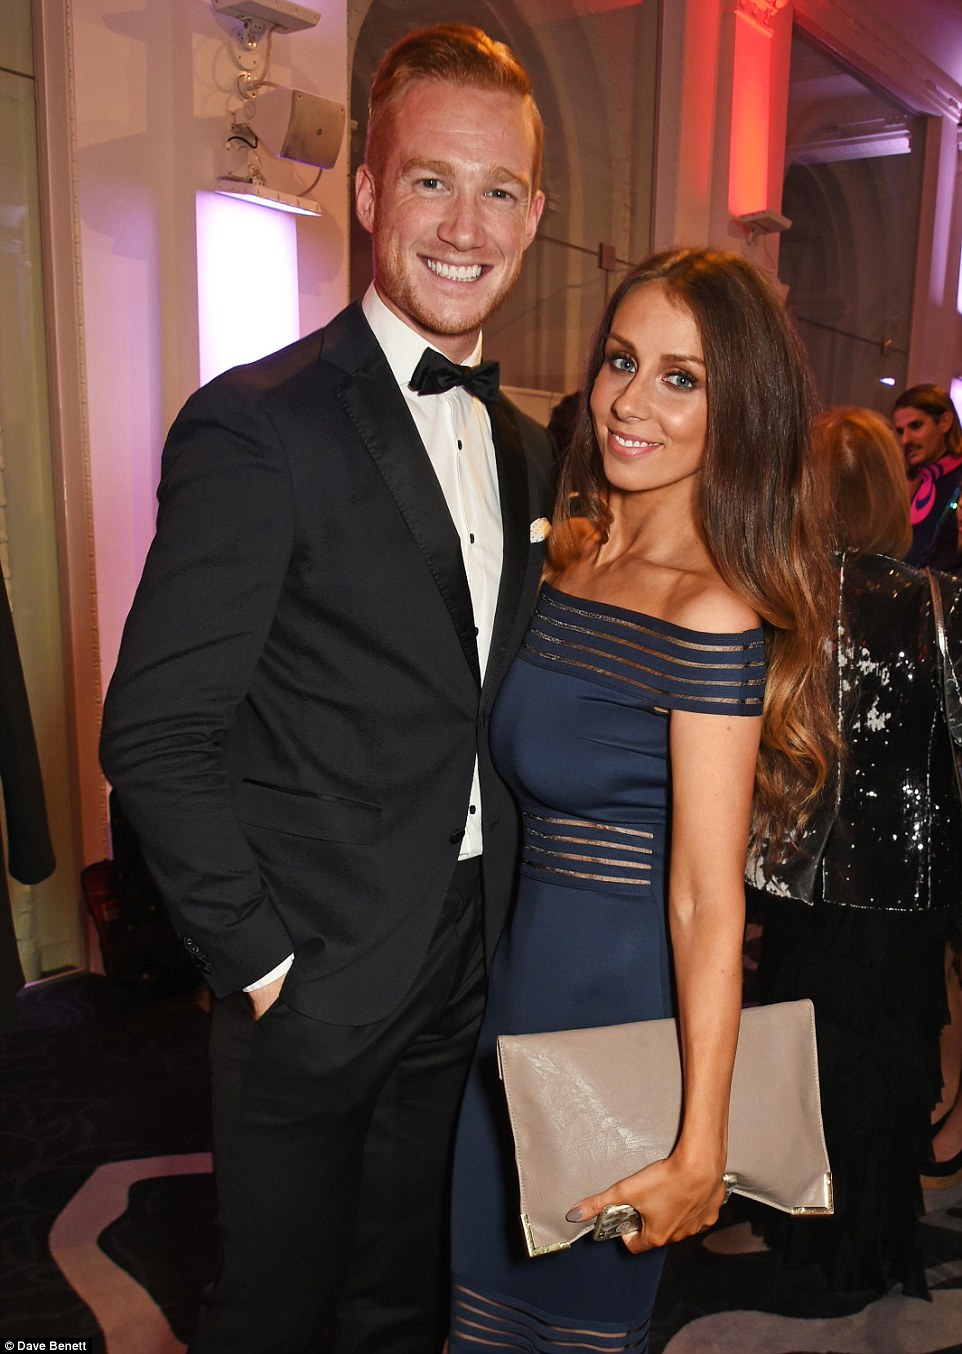 Strictly stylish: Greg Rutherford and his stunning partner Susie Verrill cuddled up at the event